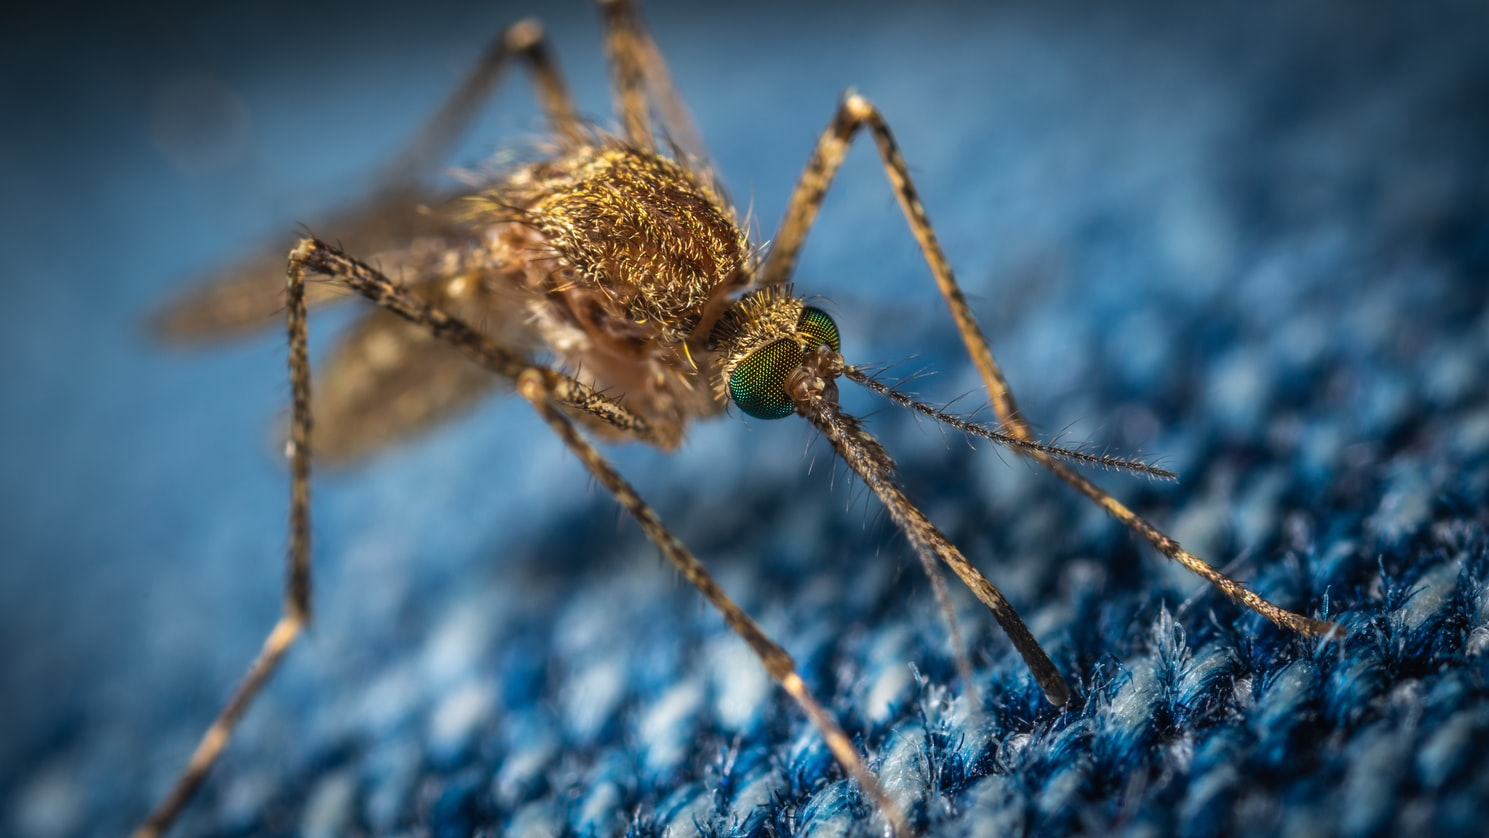 Brown mosquito on blue carpet